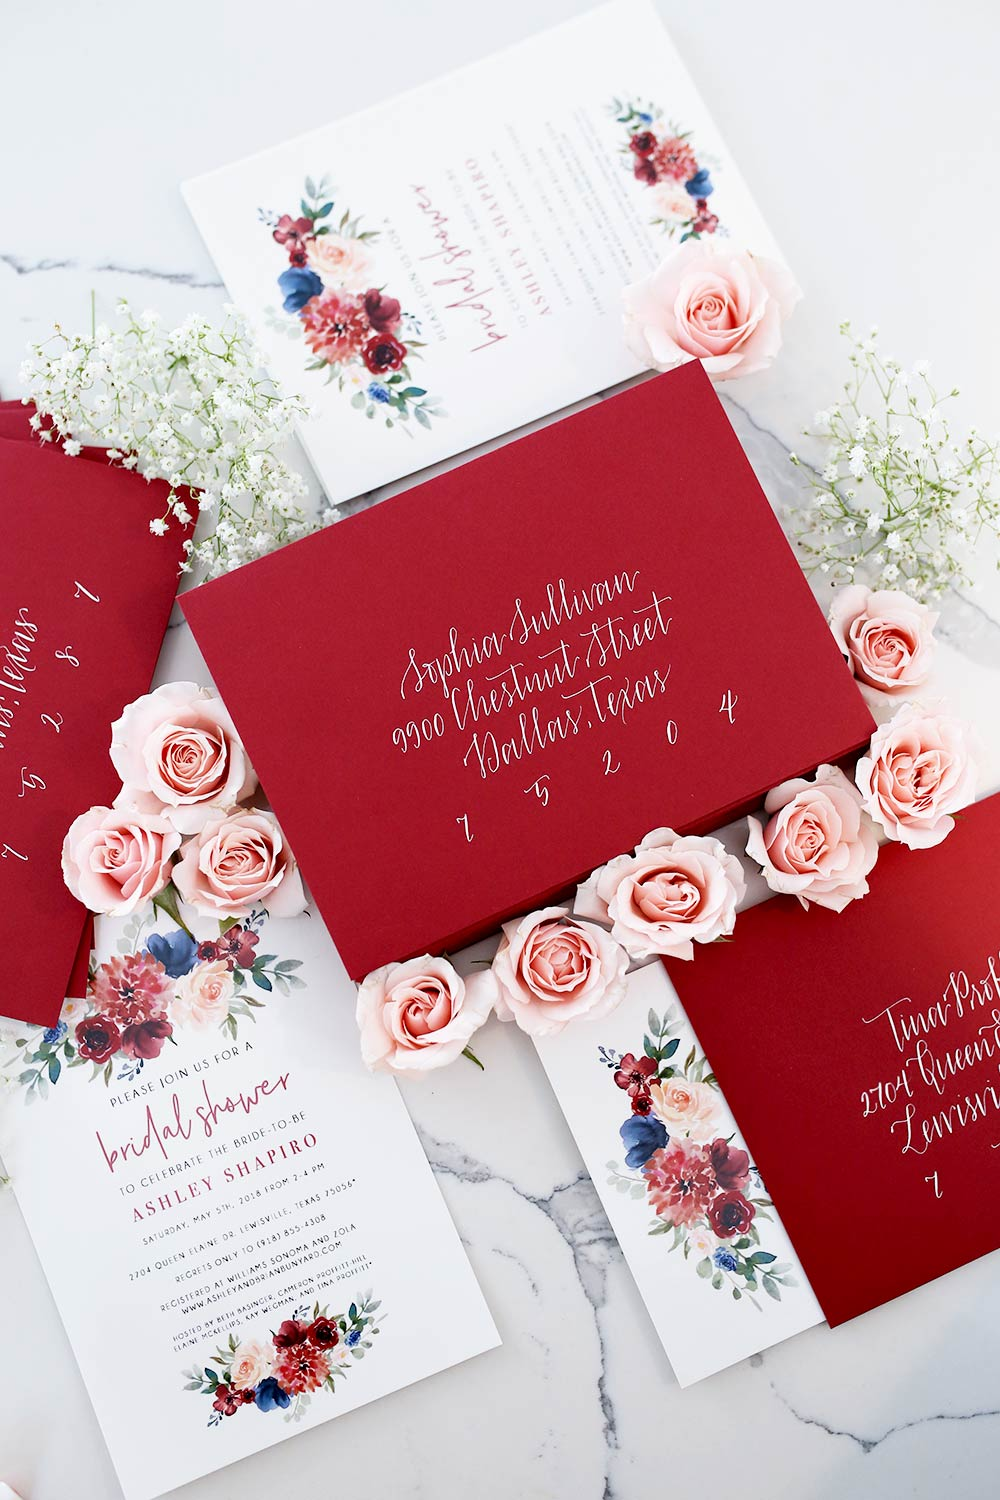 16 Creative Ways to Use Calligraphy | Dallas Wedding Calligrapher